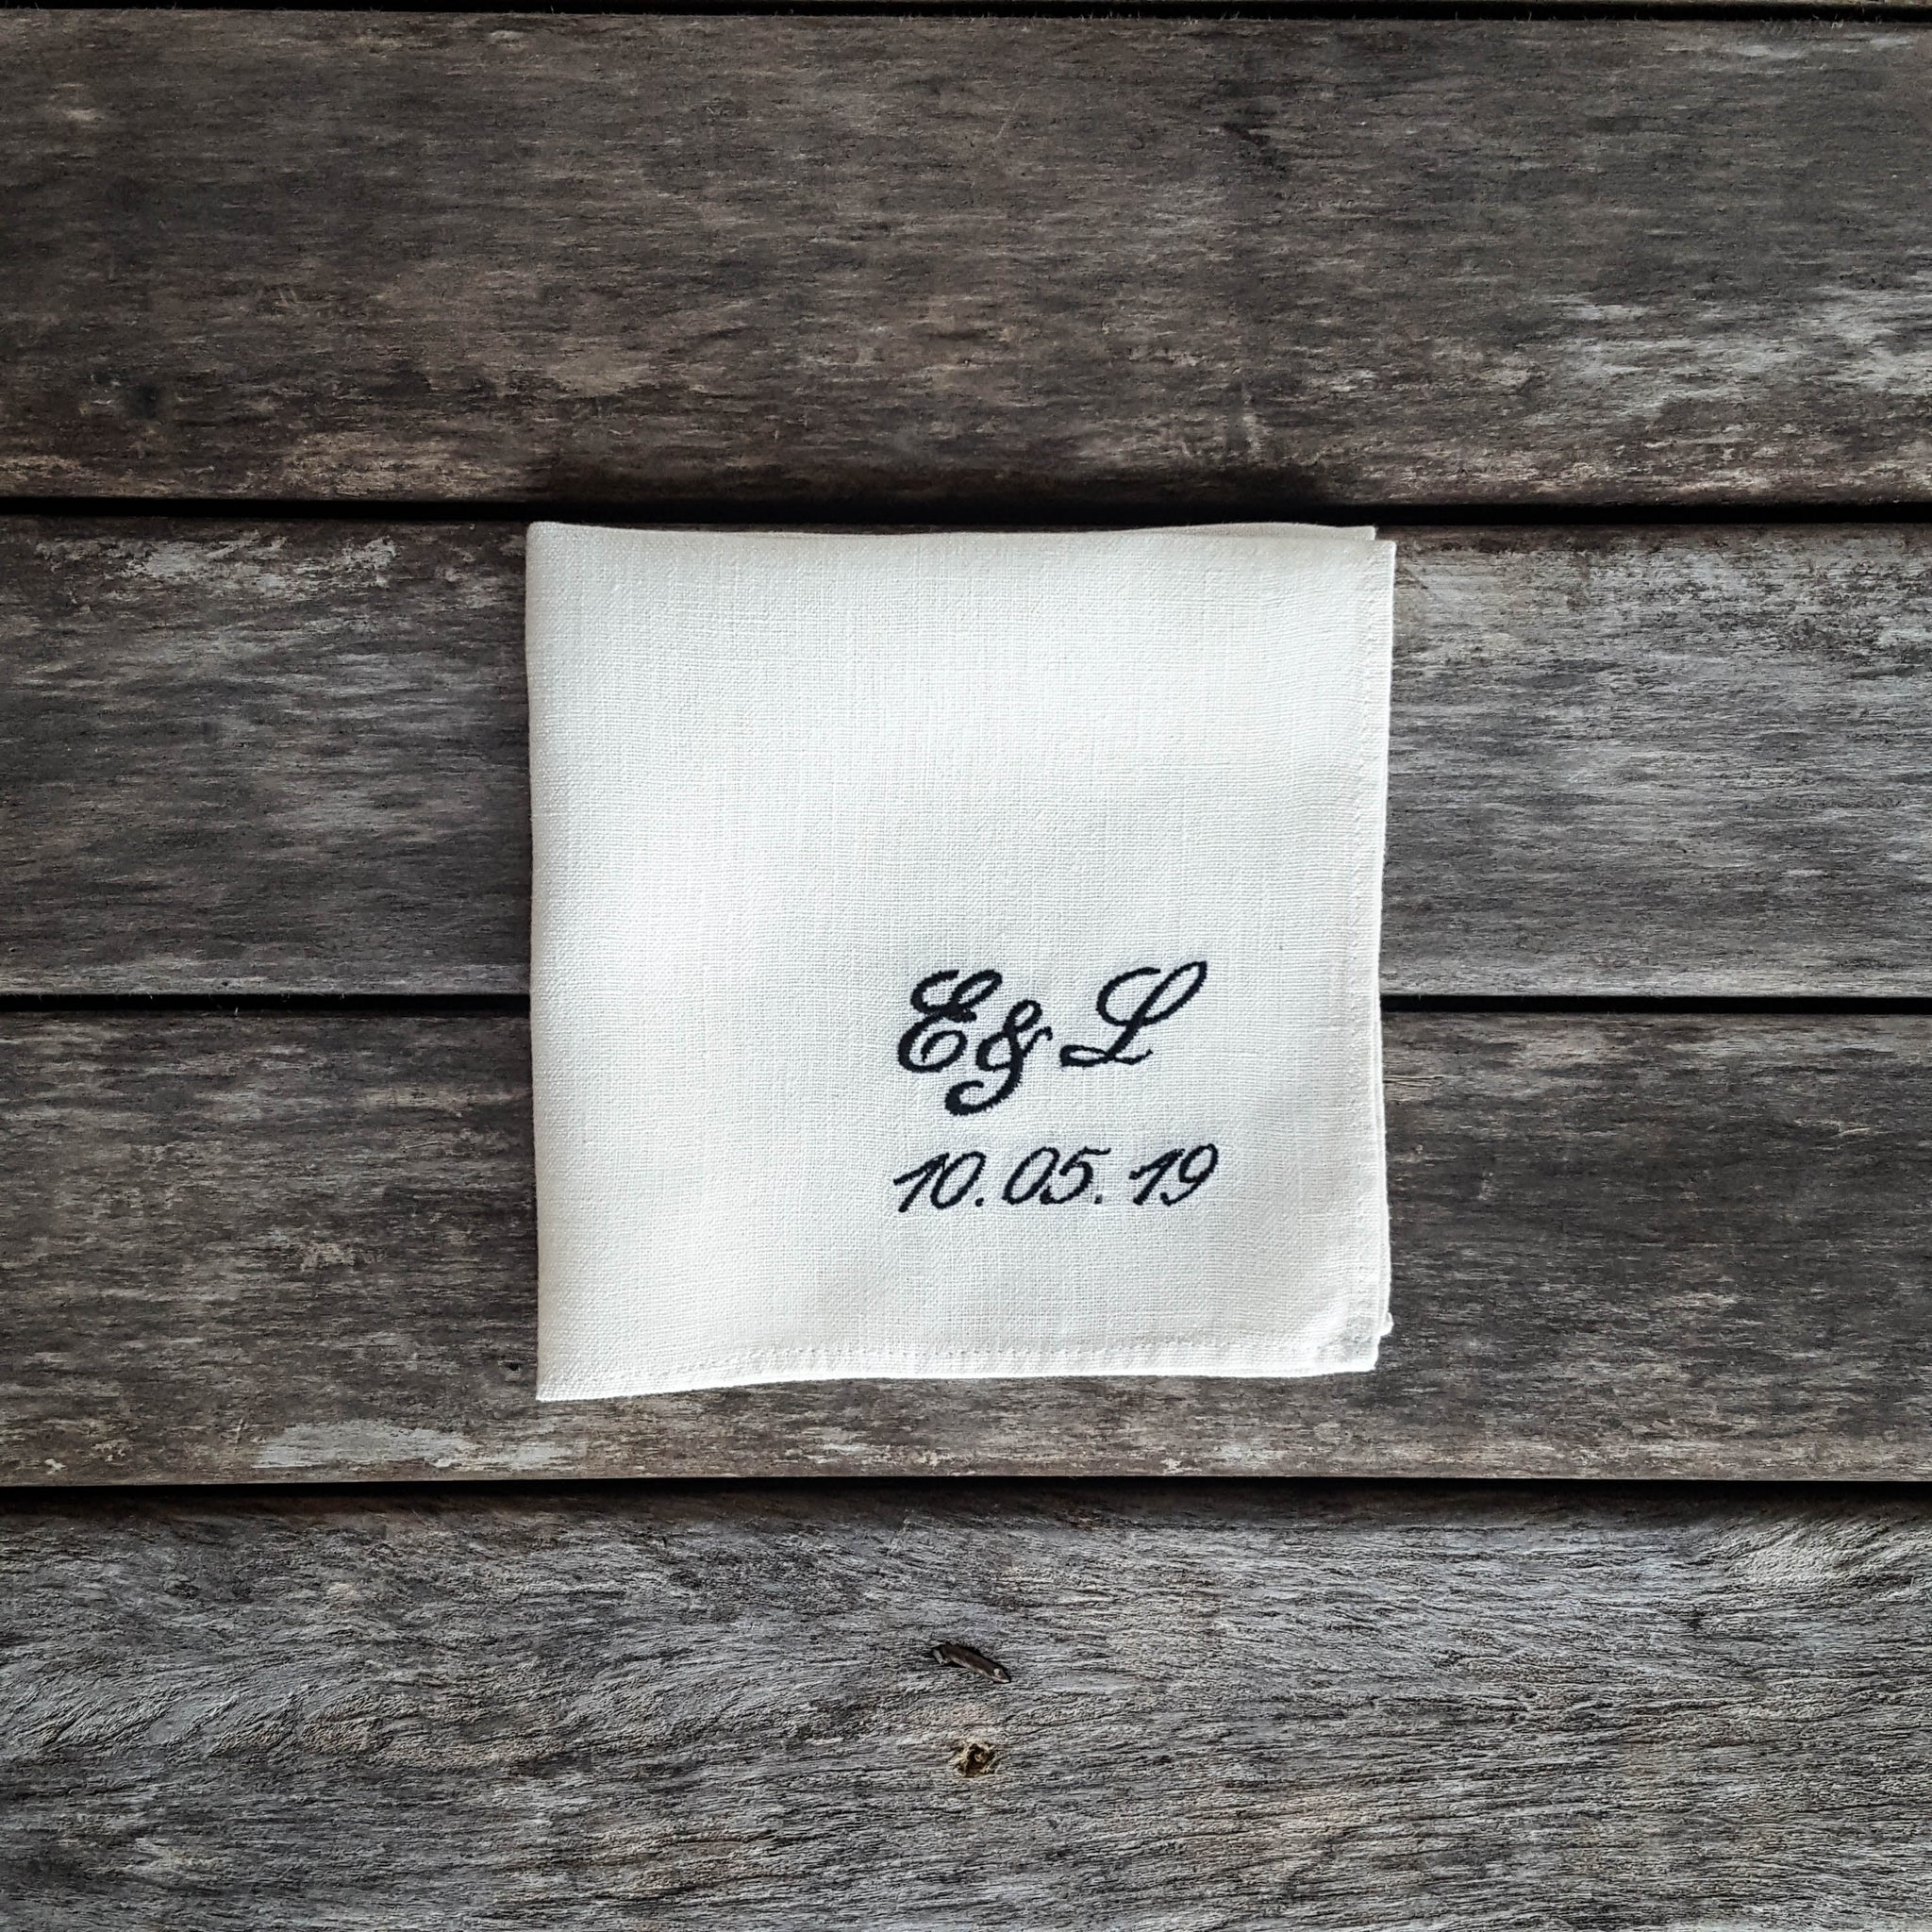 White personalized linen handkerchief, handkerchief with initials and date